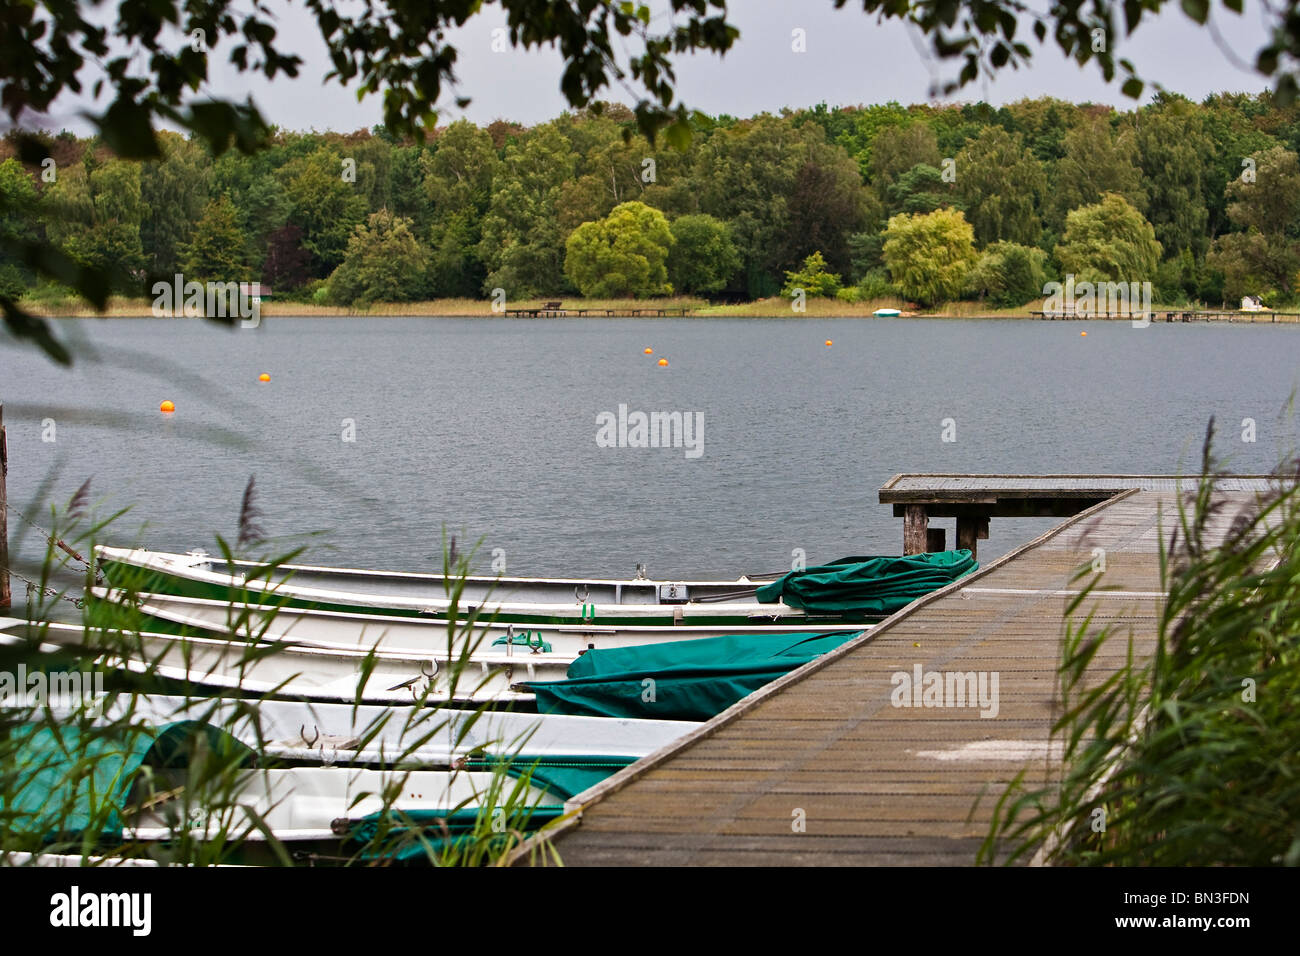 Rowing boats at Ihlsee, Schleswig-Holstein, Germany - Stock Image